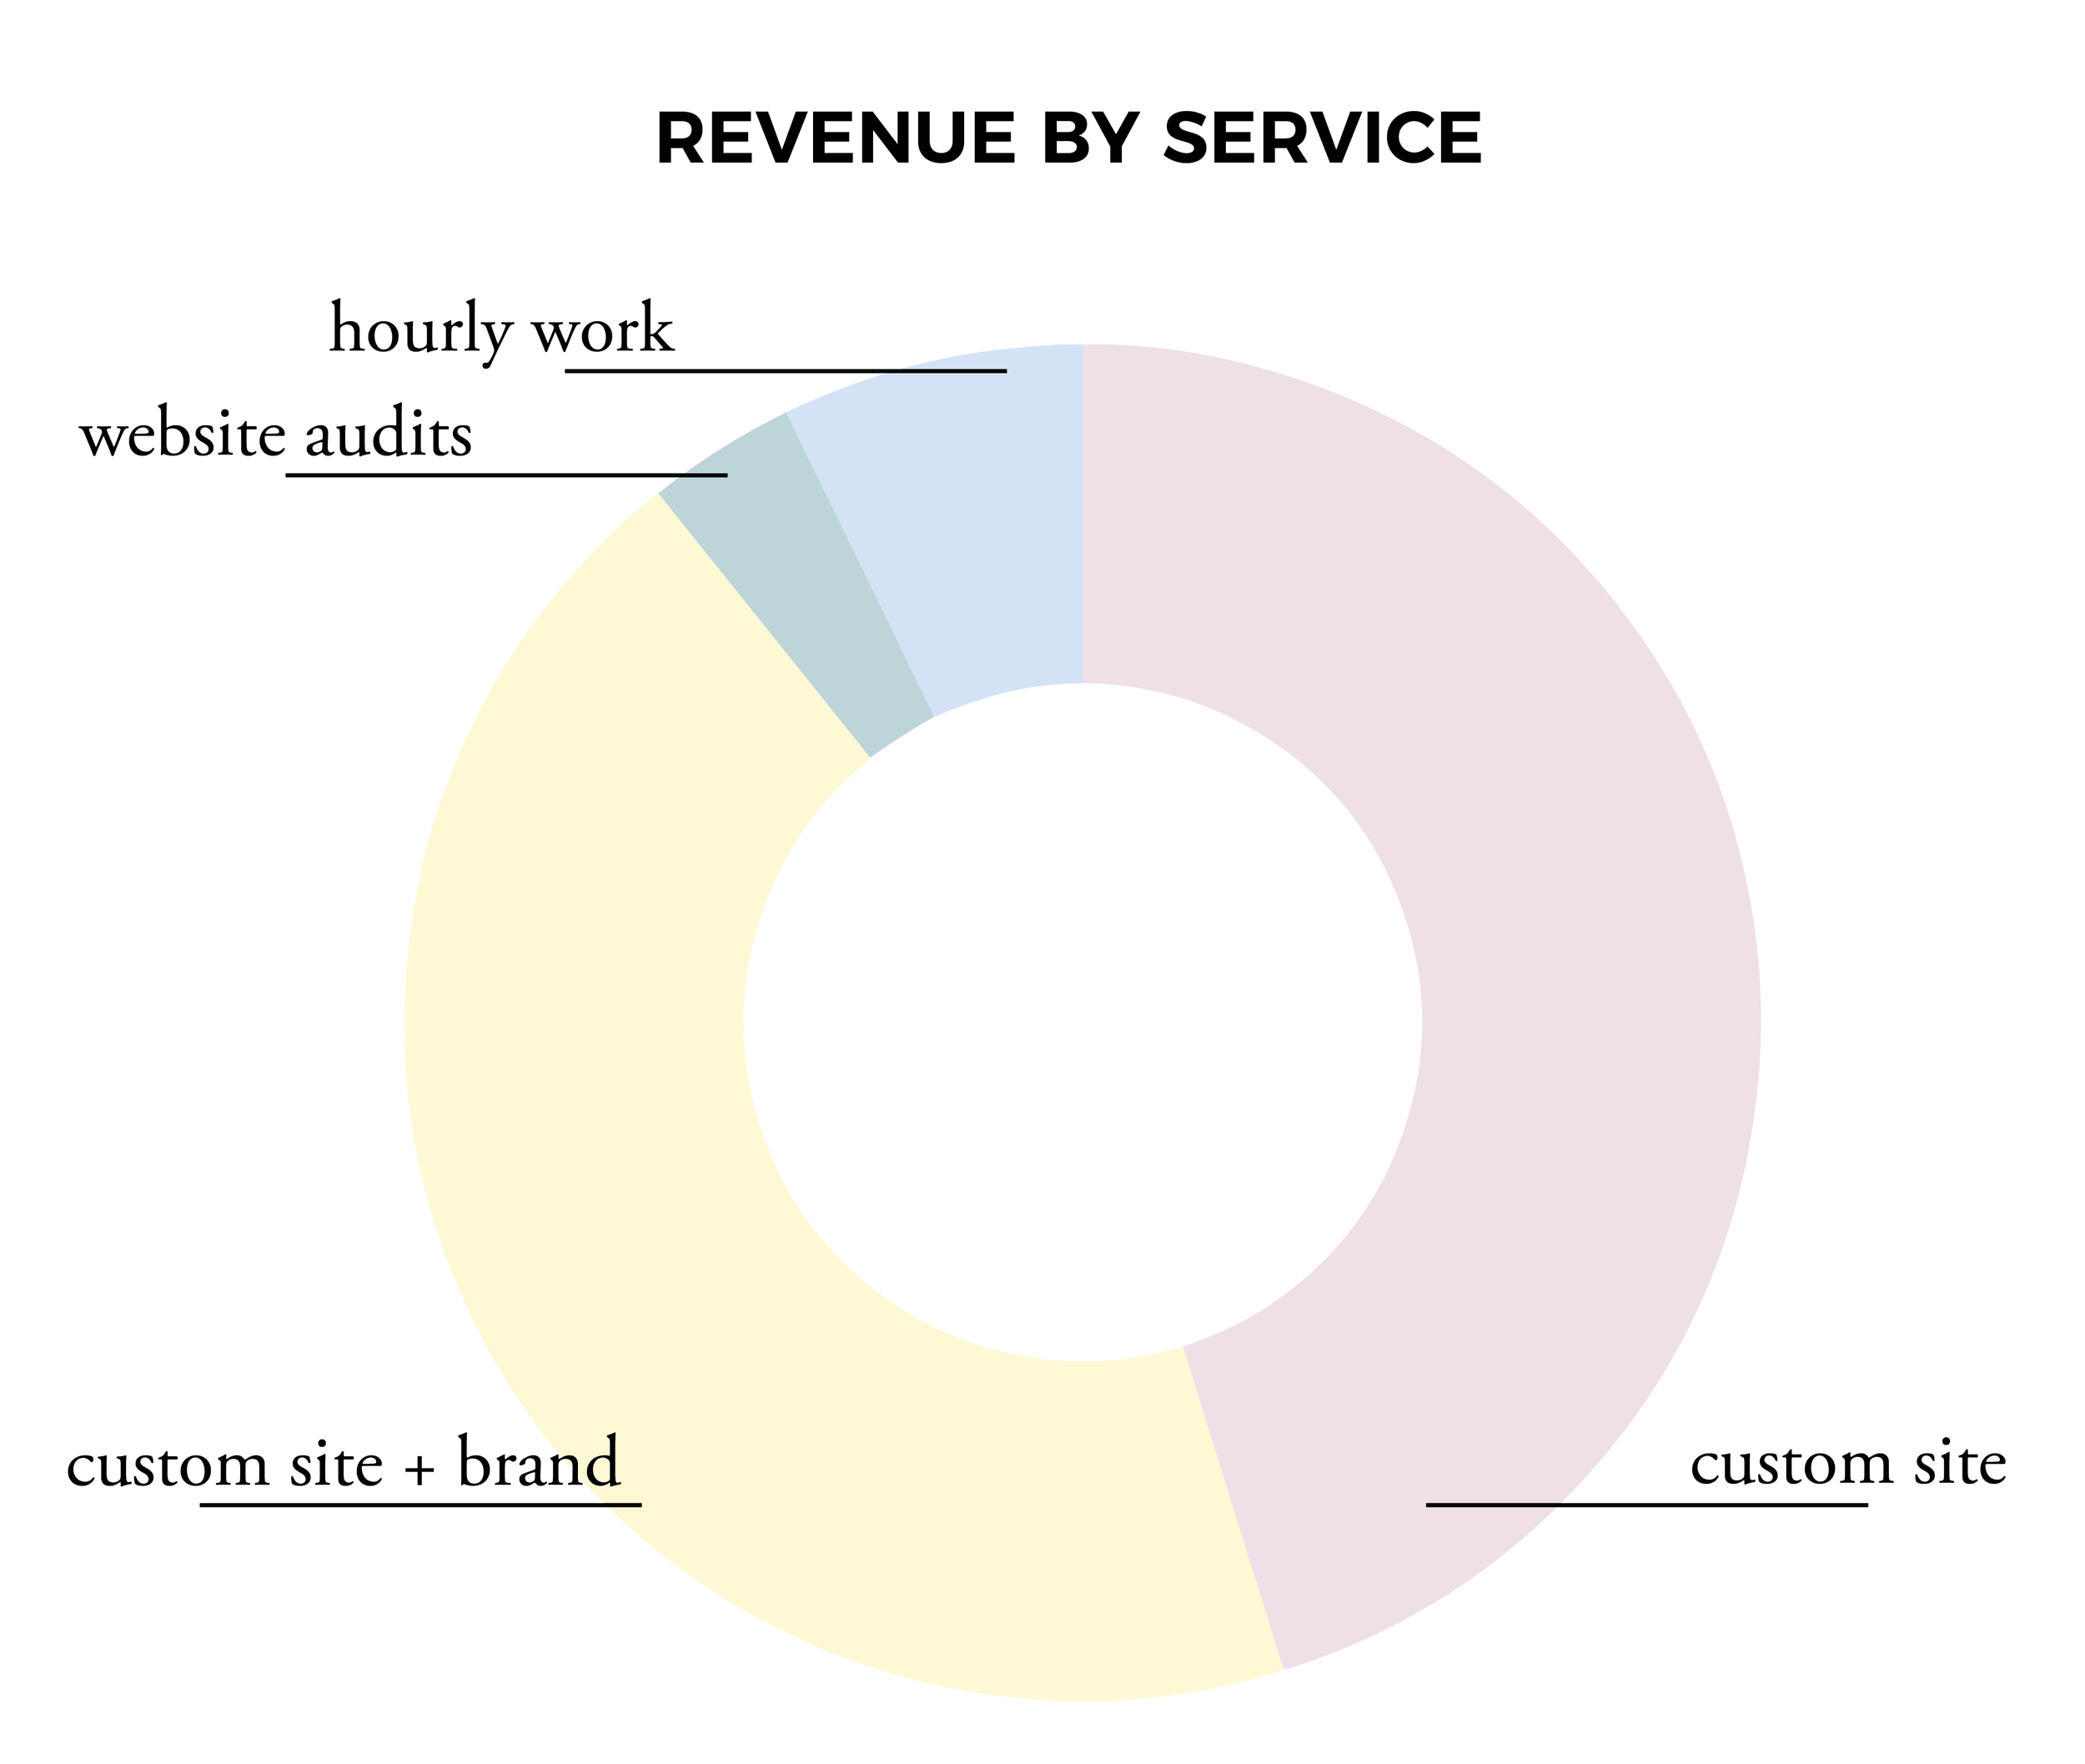 revenue by service chart.png